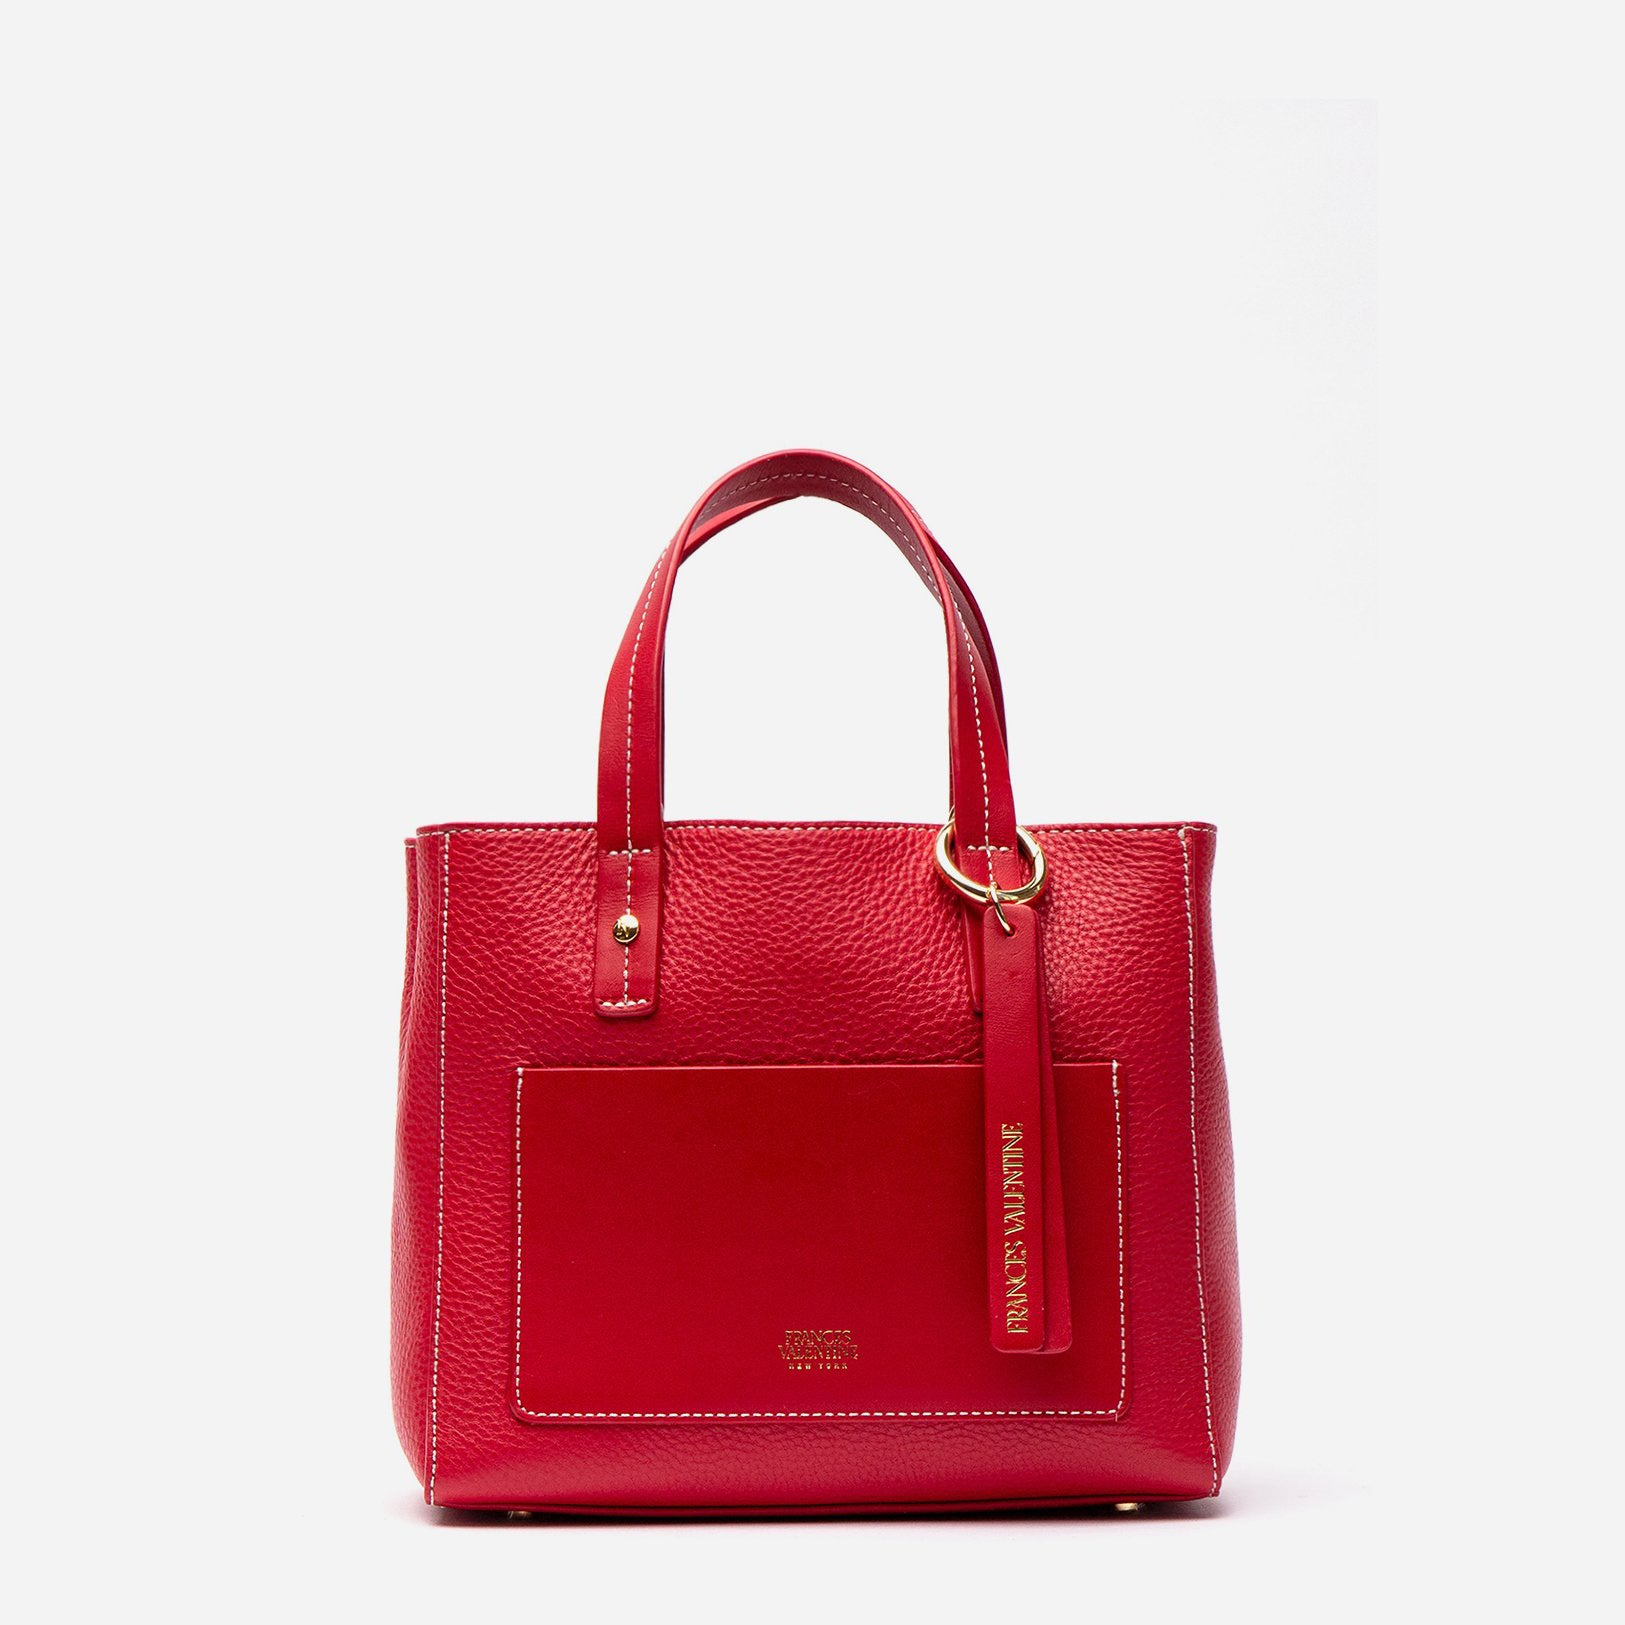 Small Chloe Tumbled Leather Red - Frances Valentine